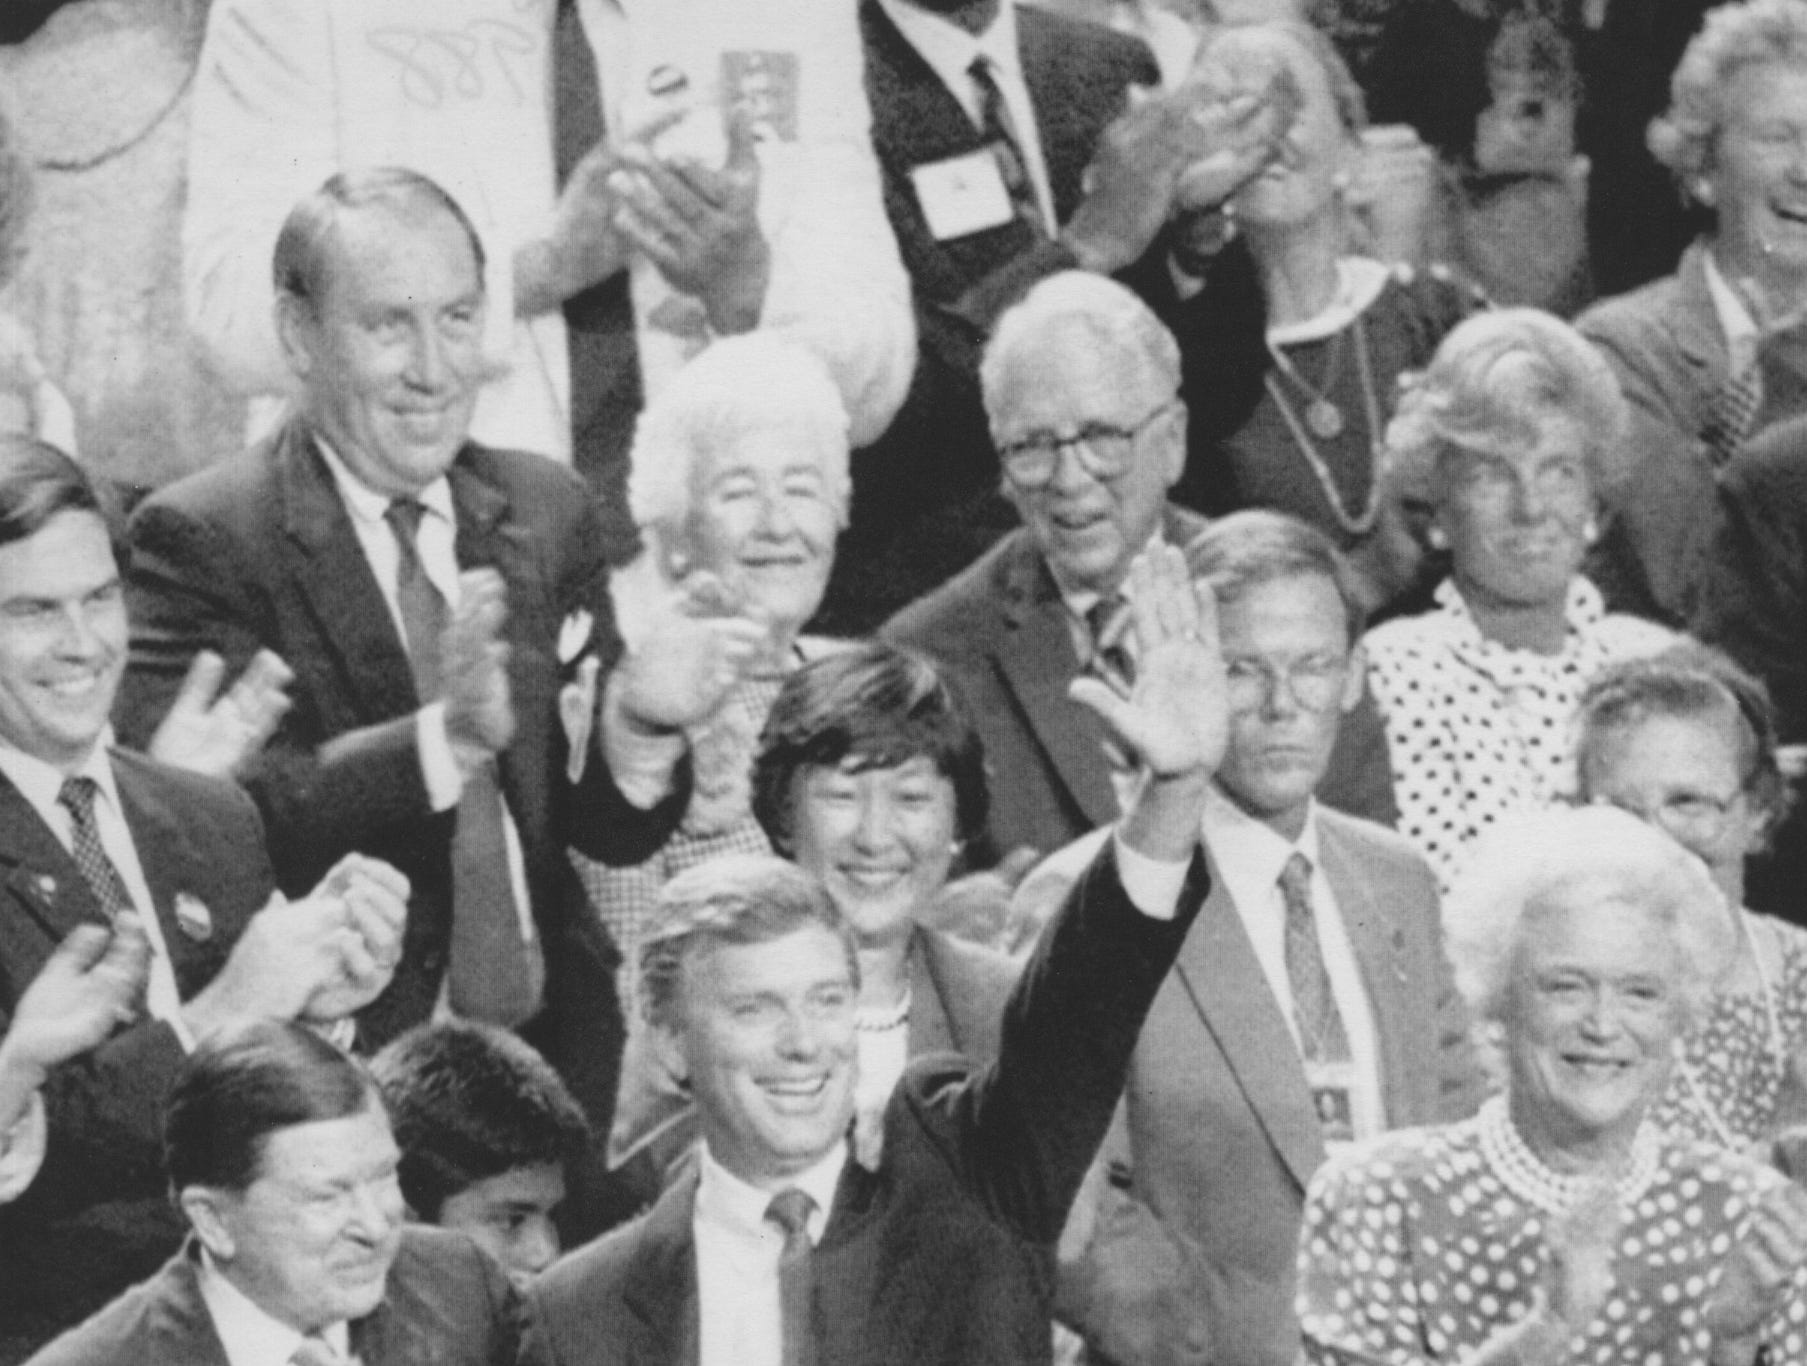 Sen. Dan Quayle of Indiana shakes hands with former Sen. John Tower of Texas with one hand and waves to the assembled delegates with the other during the Republican National Convention in New Orleans on Aug. 17, 1988. Quayle, selected by George Bush to be his running mate, sat with Barbara Bush, right, to witness the presidential nomination roll call.